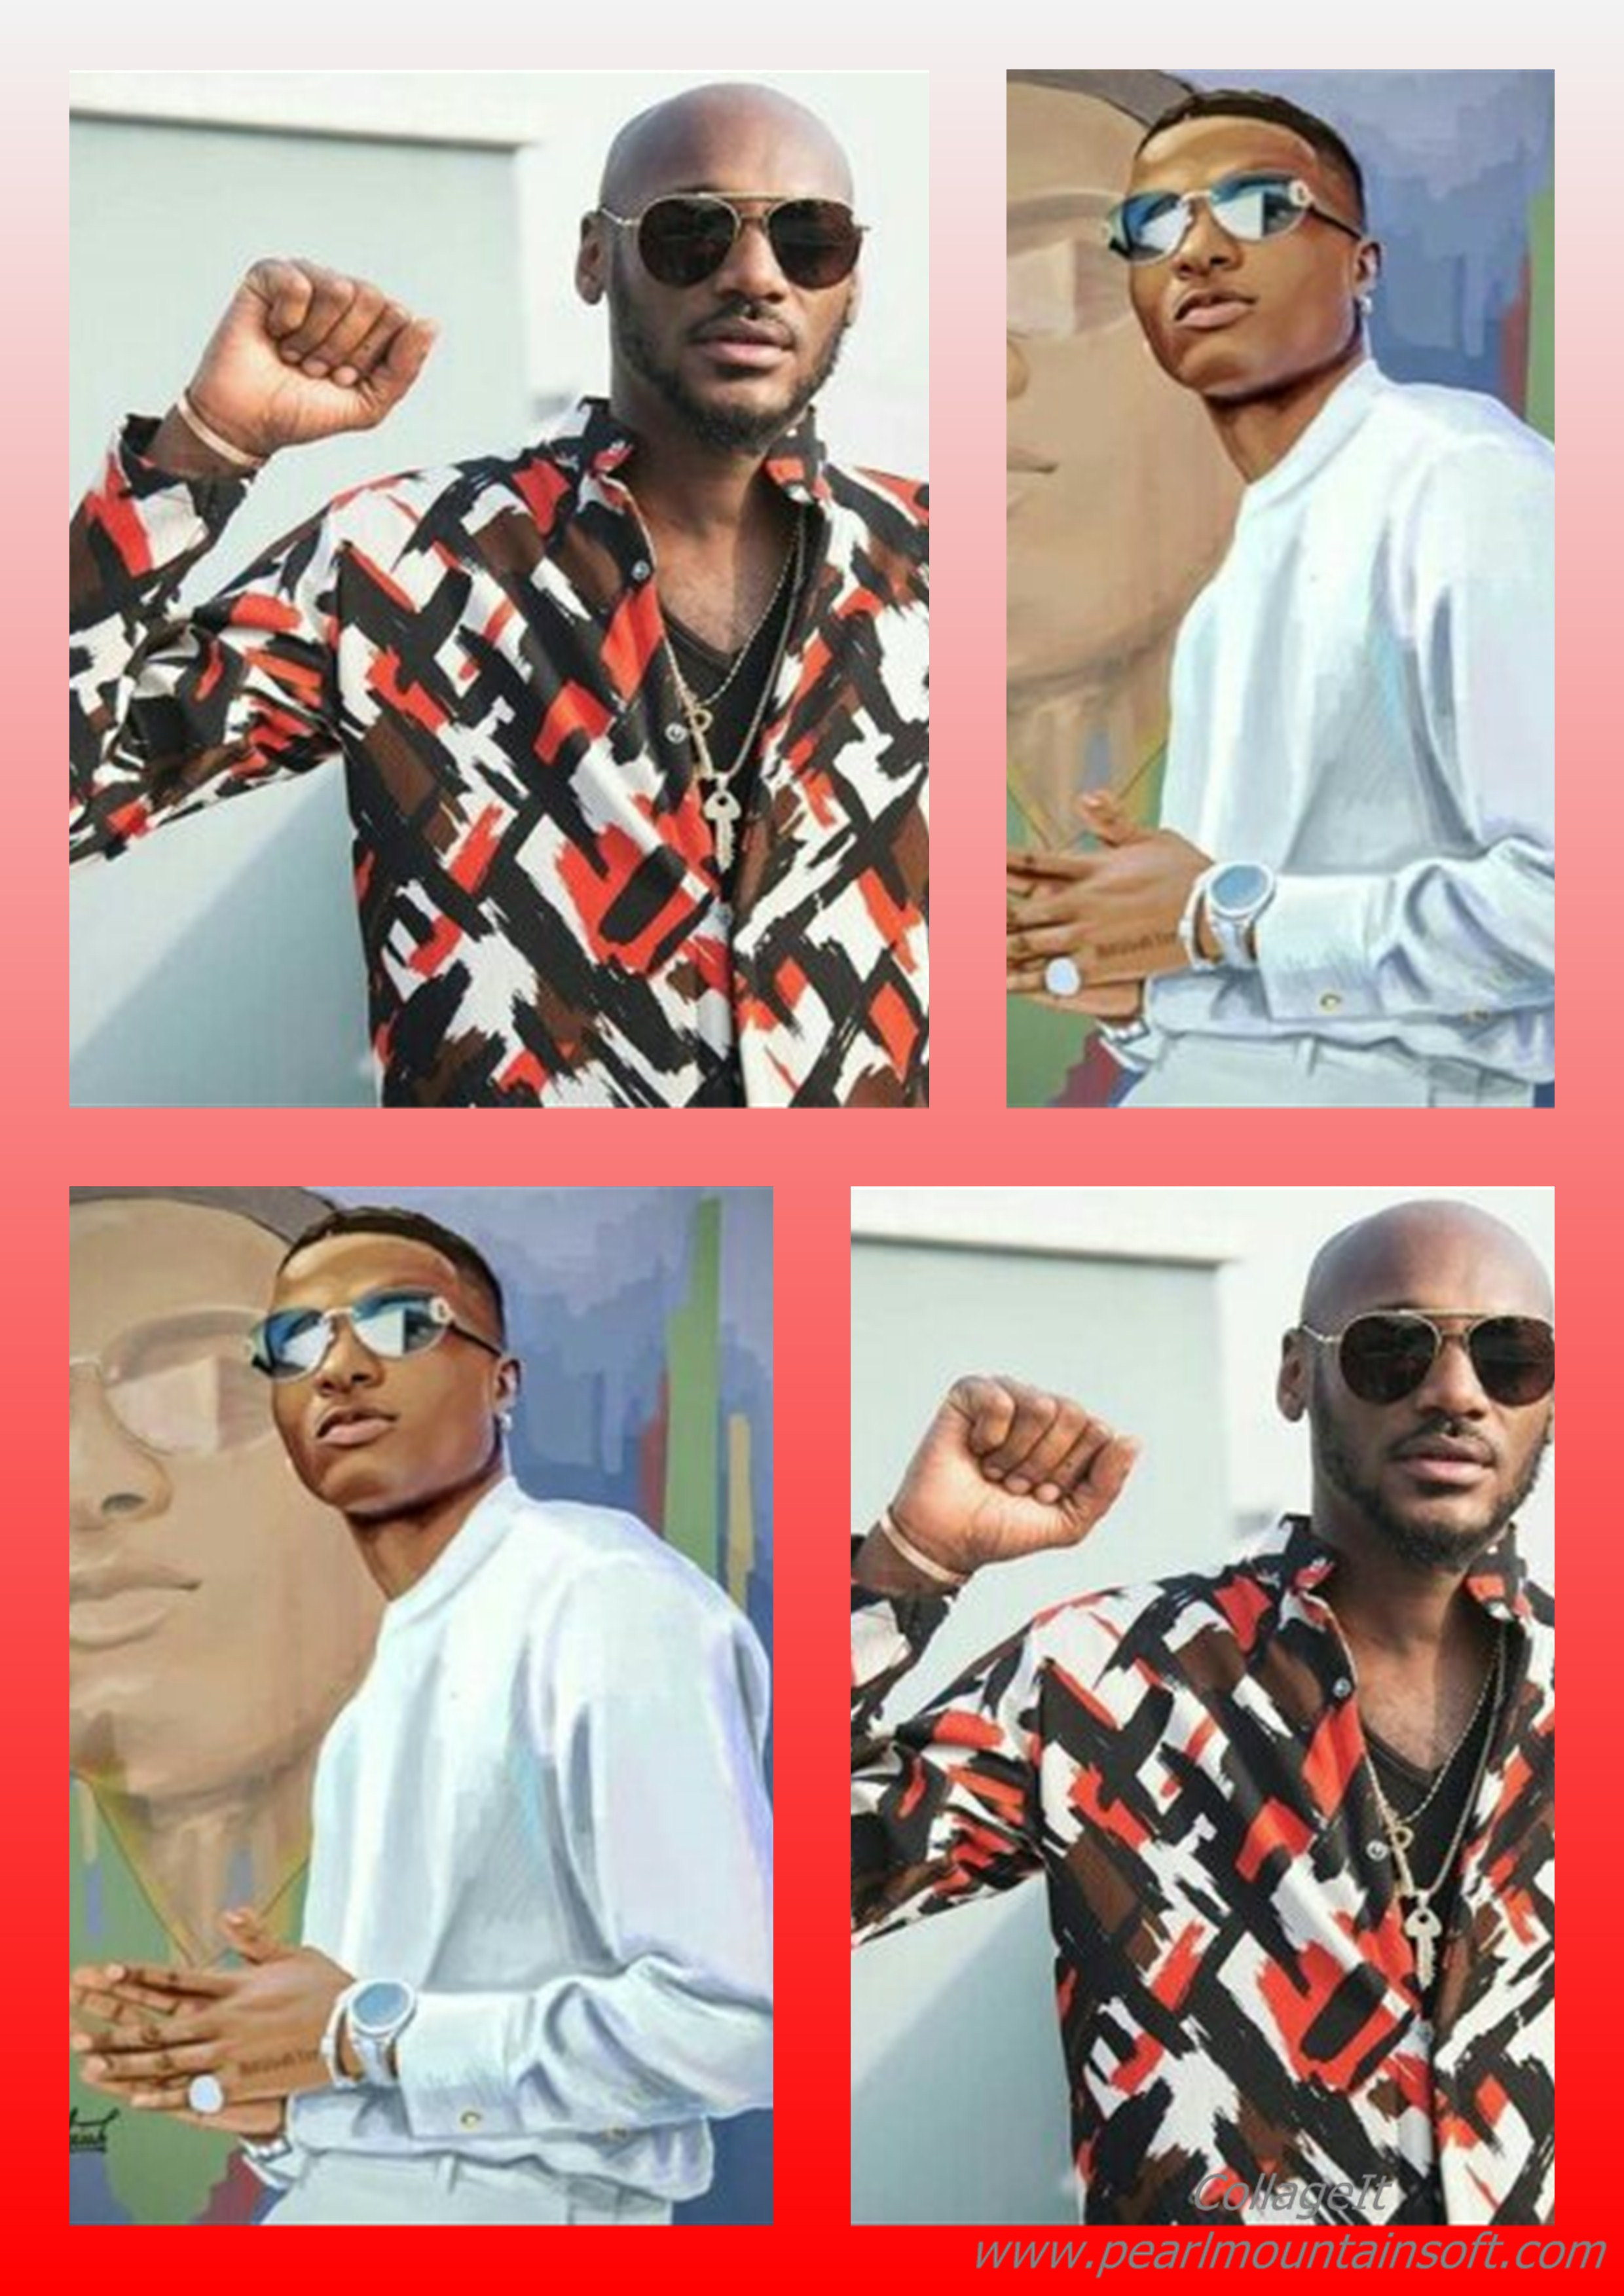 """(+LYRICS+MEANING+TRANSLATION) MUSIC REVIEW- OPO BY 2BABA FT WIZKID """"HERE IS THE REALEST MEANING OF THE SONG"""" +WIZKID DEY LIKE THIS KIND OF SONG…"""